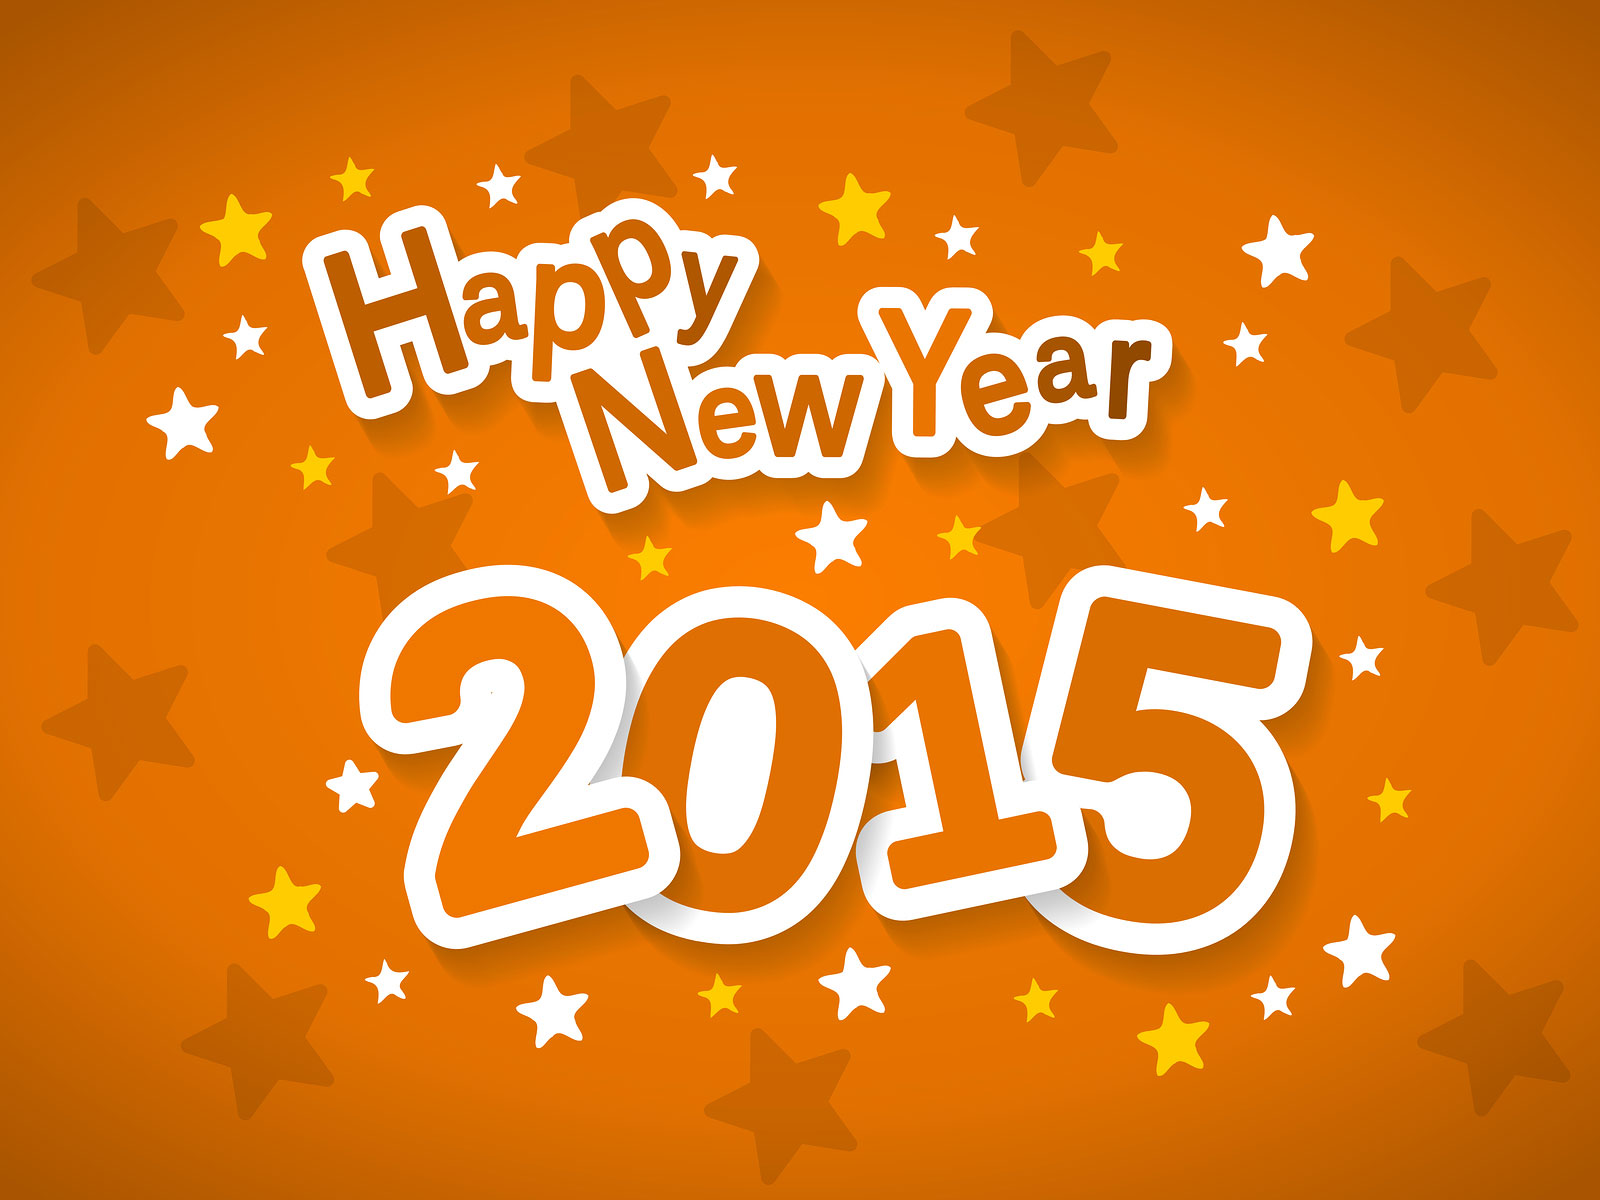 Popular Wallpaper Name Prashanth - Happy_New_Year_2015_Typography  Collection_103625.jpg